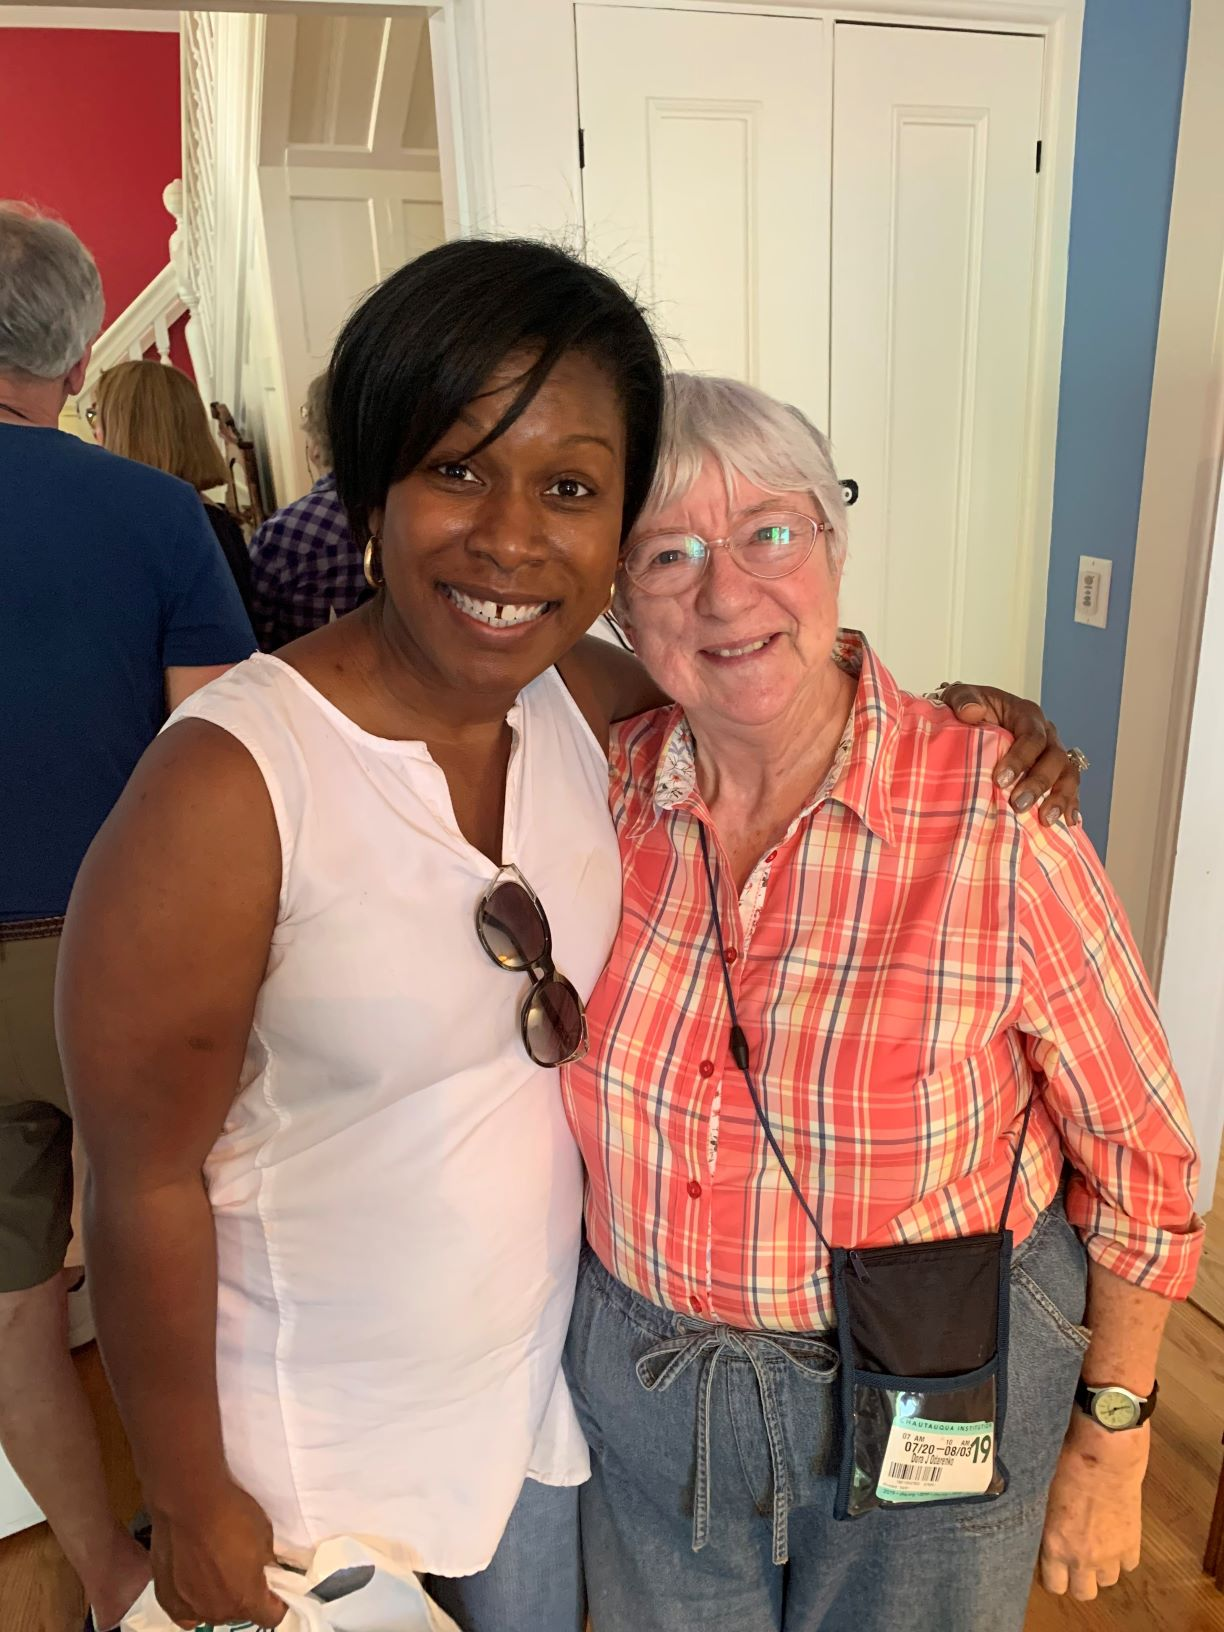 Chautauqua is a place for connections and re-connections. Dr. Jones met a divinity school classmate from the Baptist House!